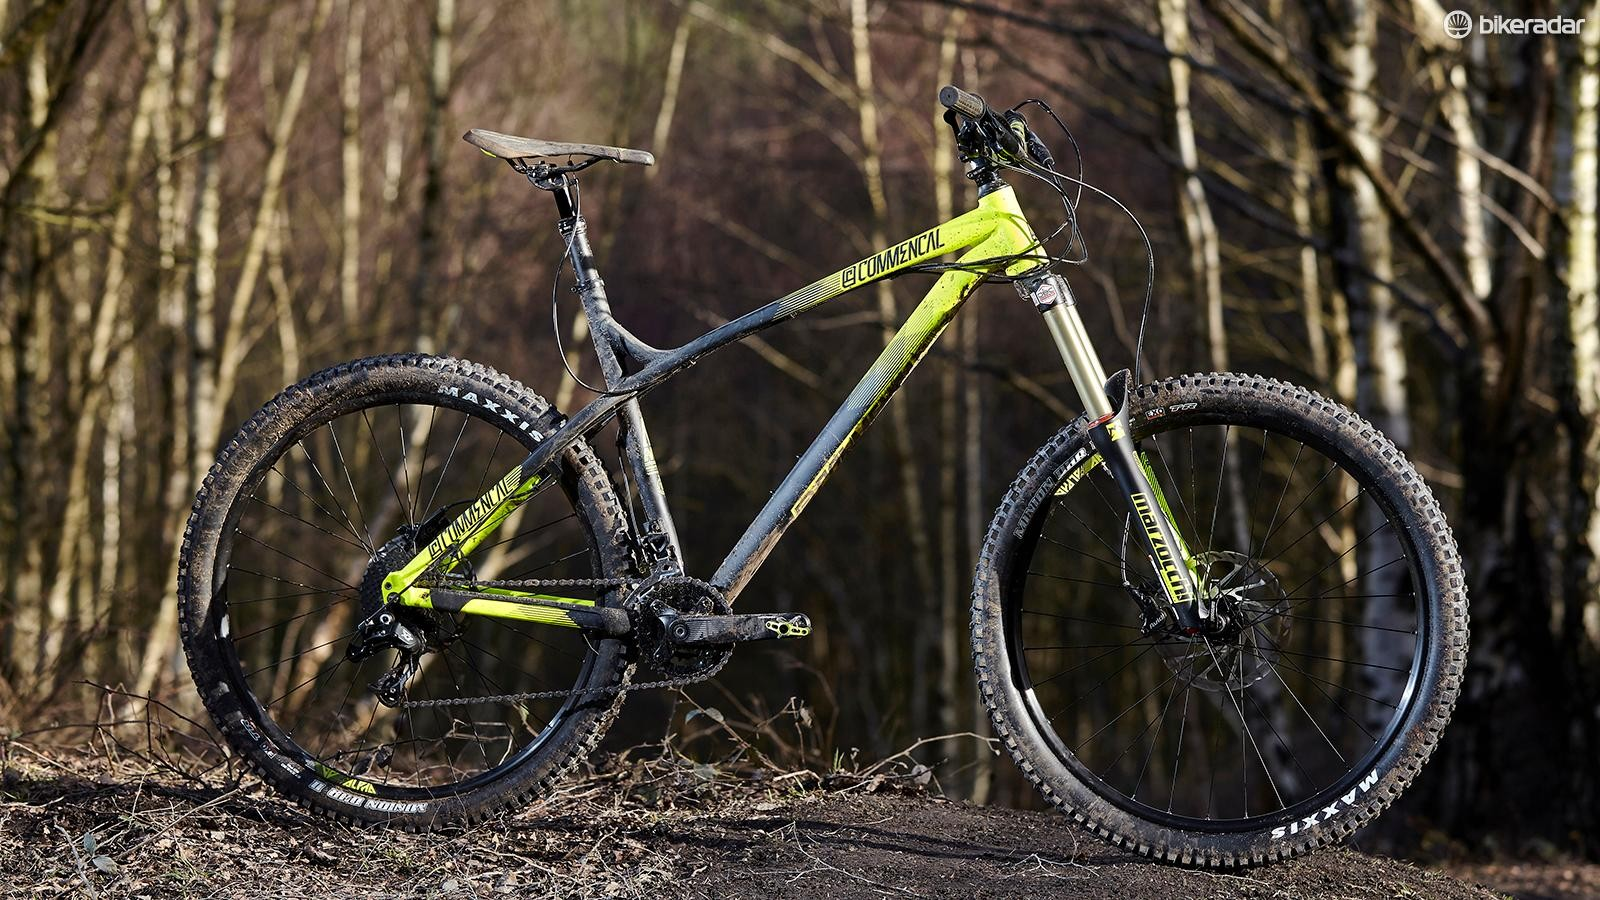 Commencal's Meta HT AM Essential makes a bold statement with its 160mm fork and hardtail rear end